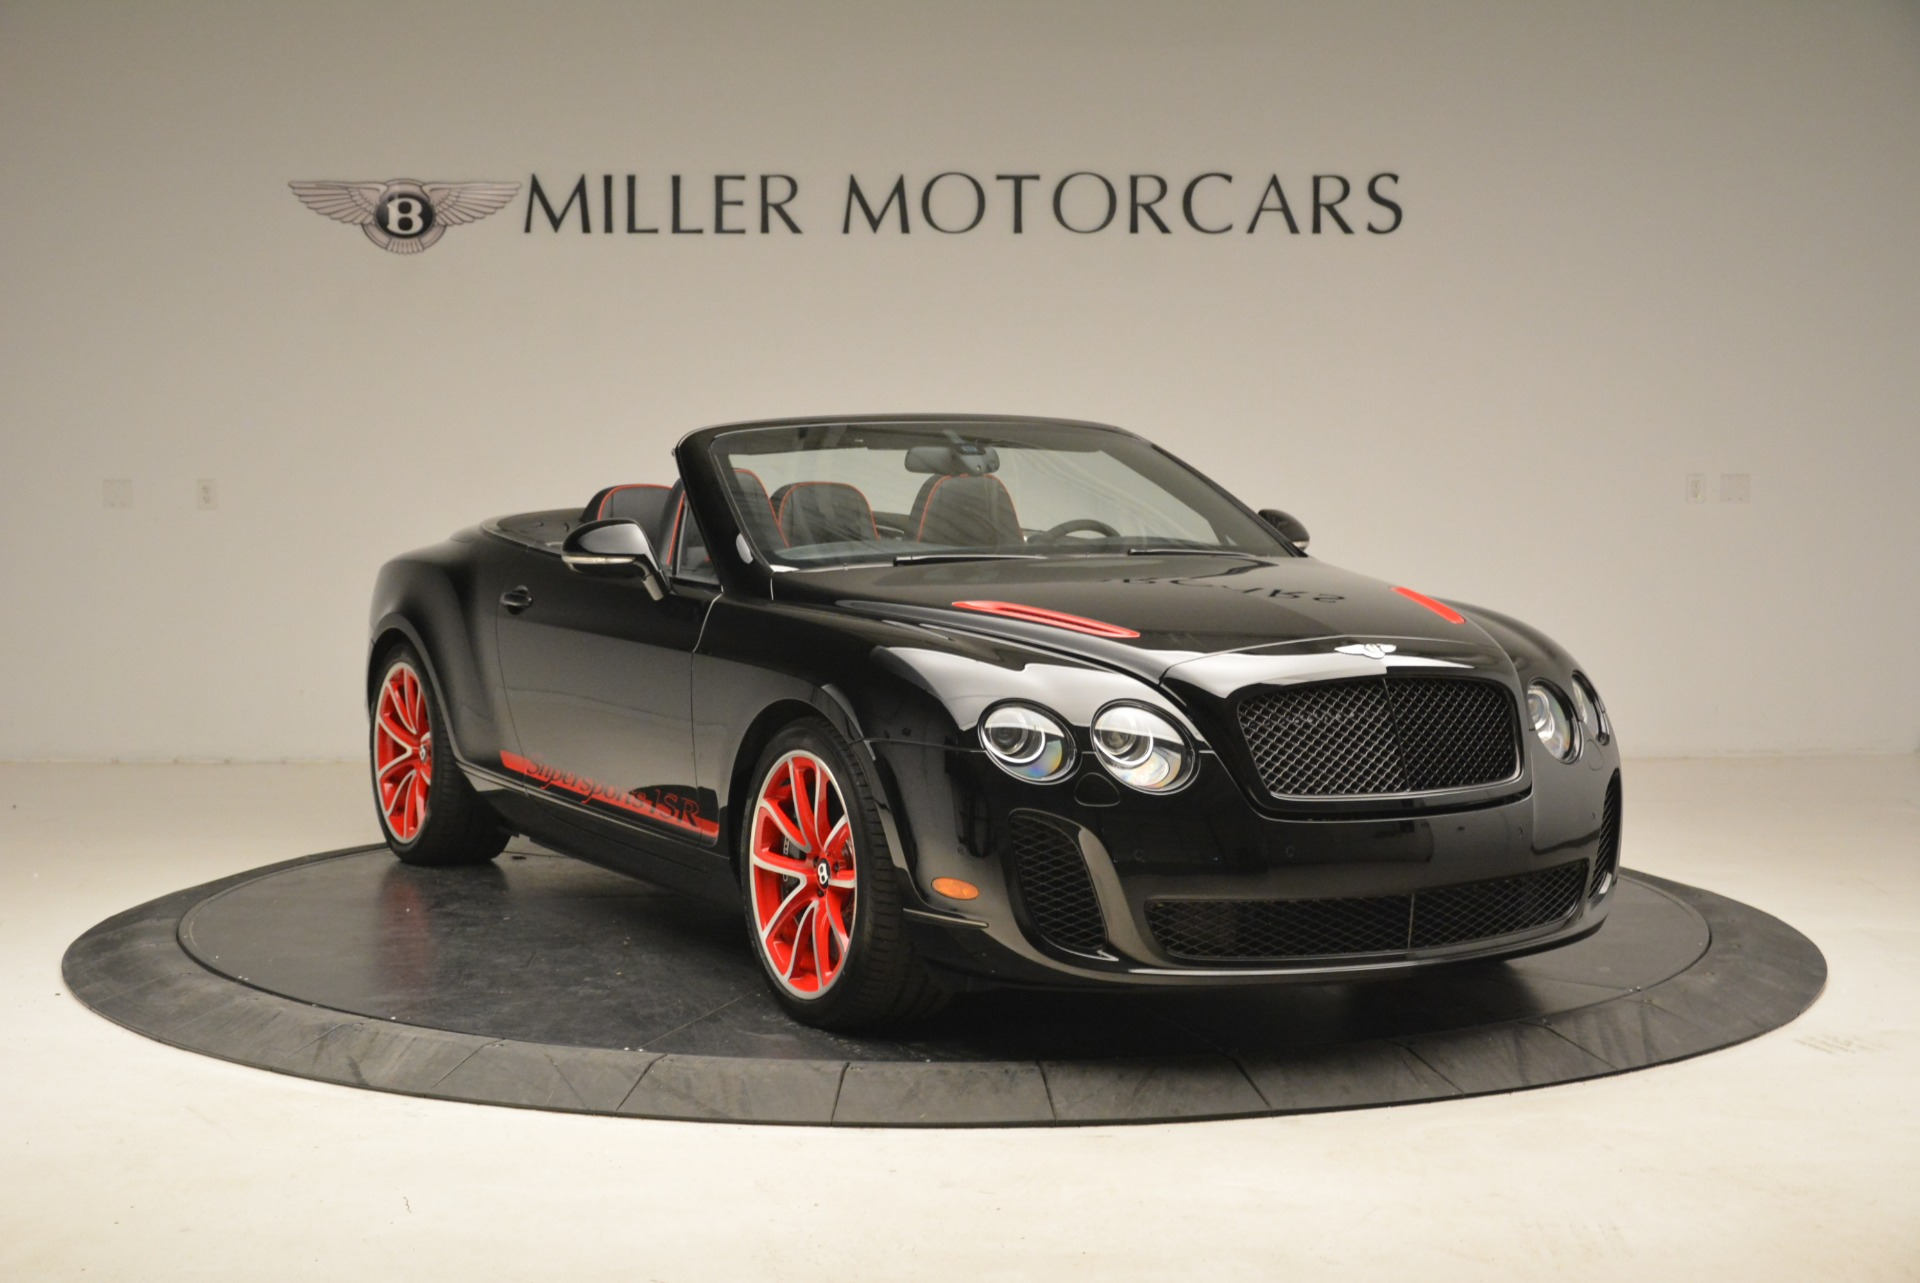 Used 2013 Bentley Continental GT Supersports Convertible ISR For Sale In Greenwich, CT 2151_p11